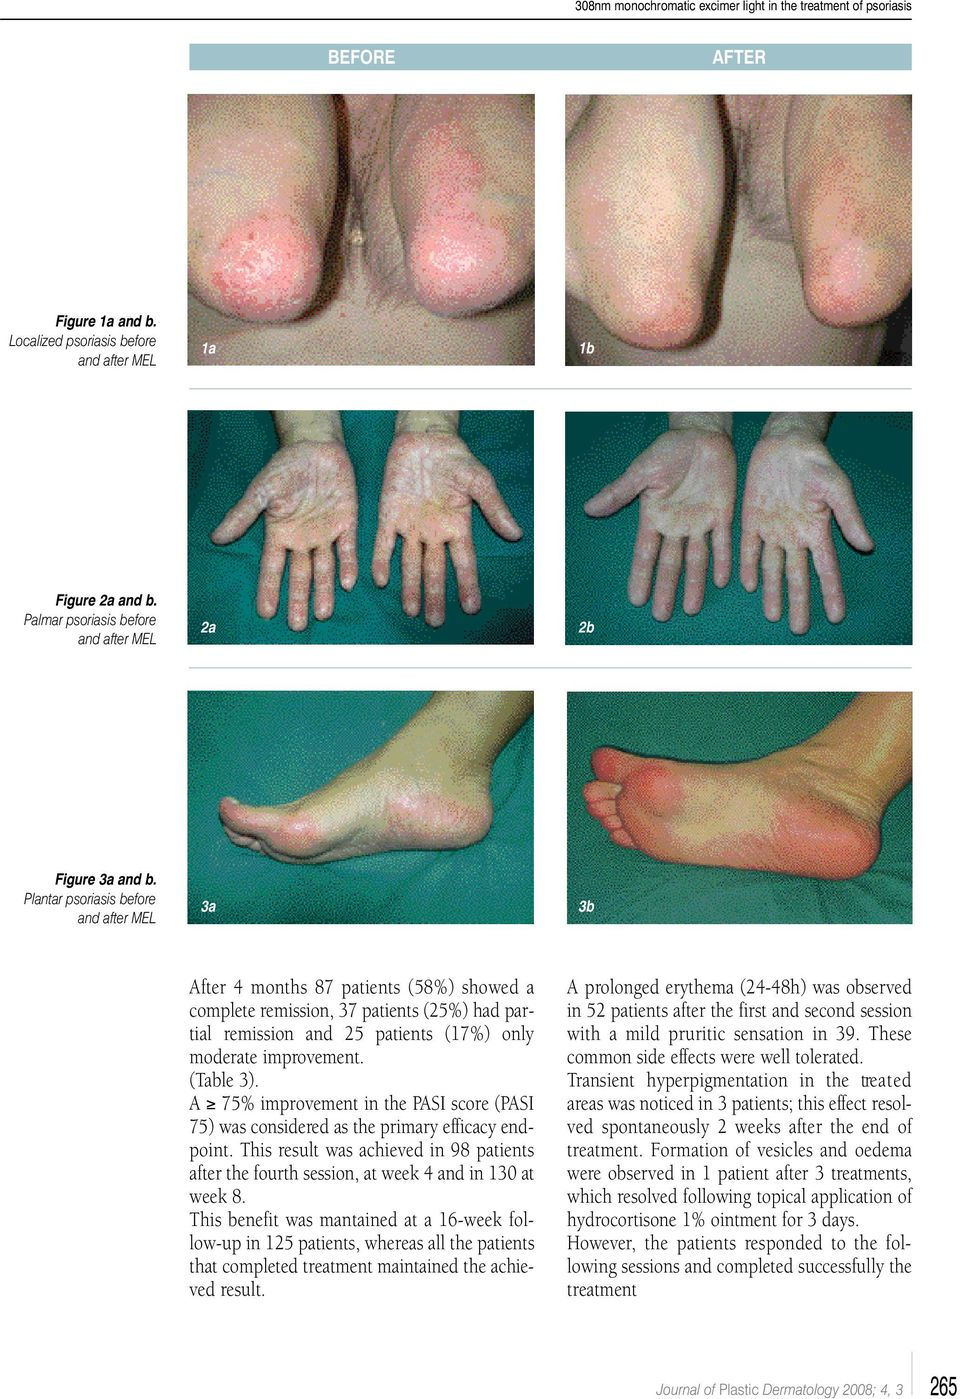 Plantar psoriasis before and after MEL 3a 3b After 4 months 87 patients (58%) showed a complete remission, 37 patients (25%) had partial remission and 25 patients (17%) only moderate improvement.